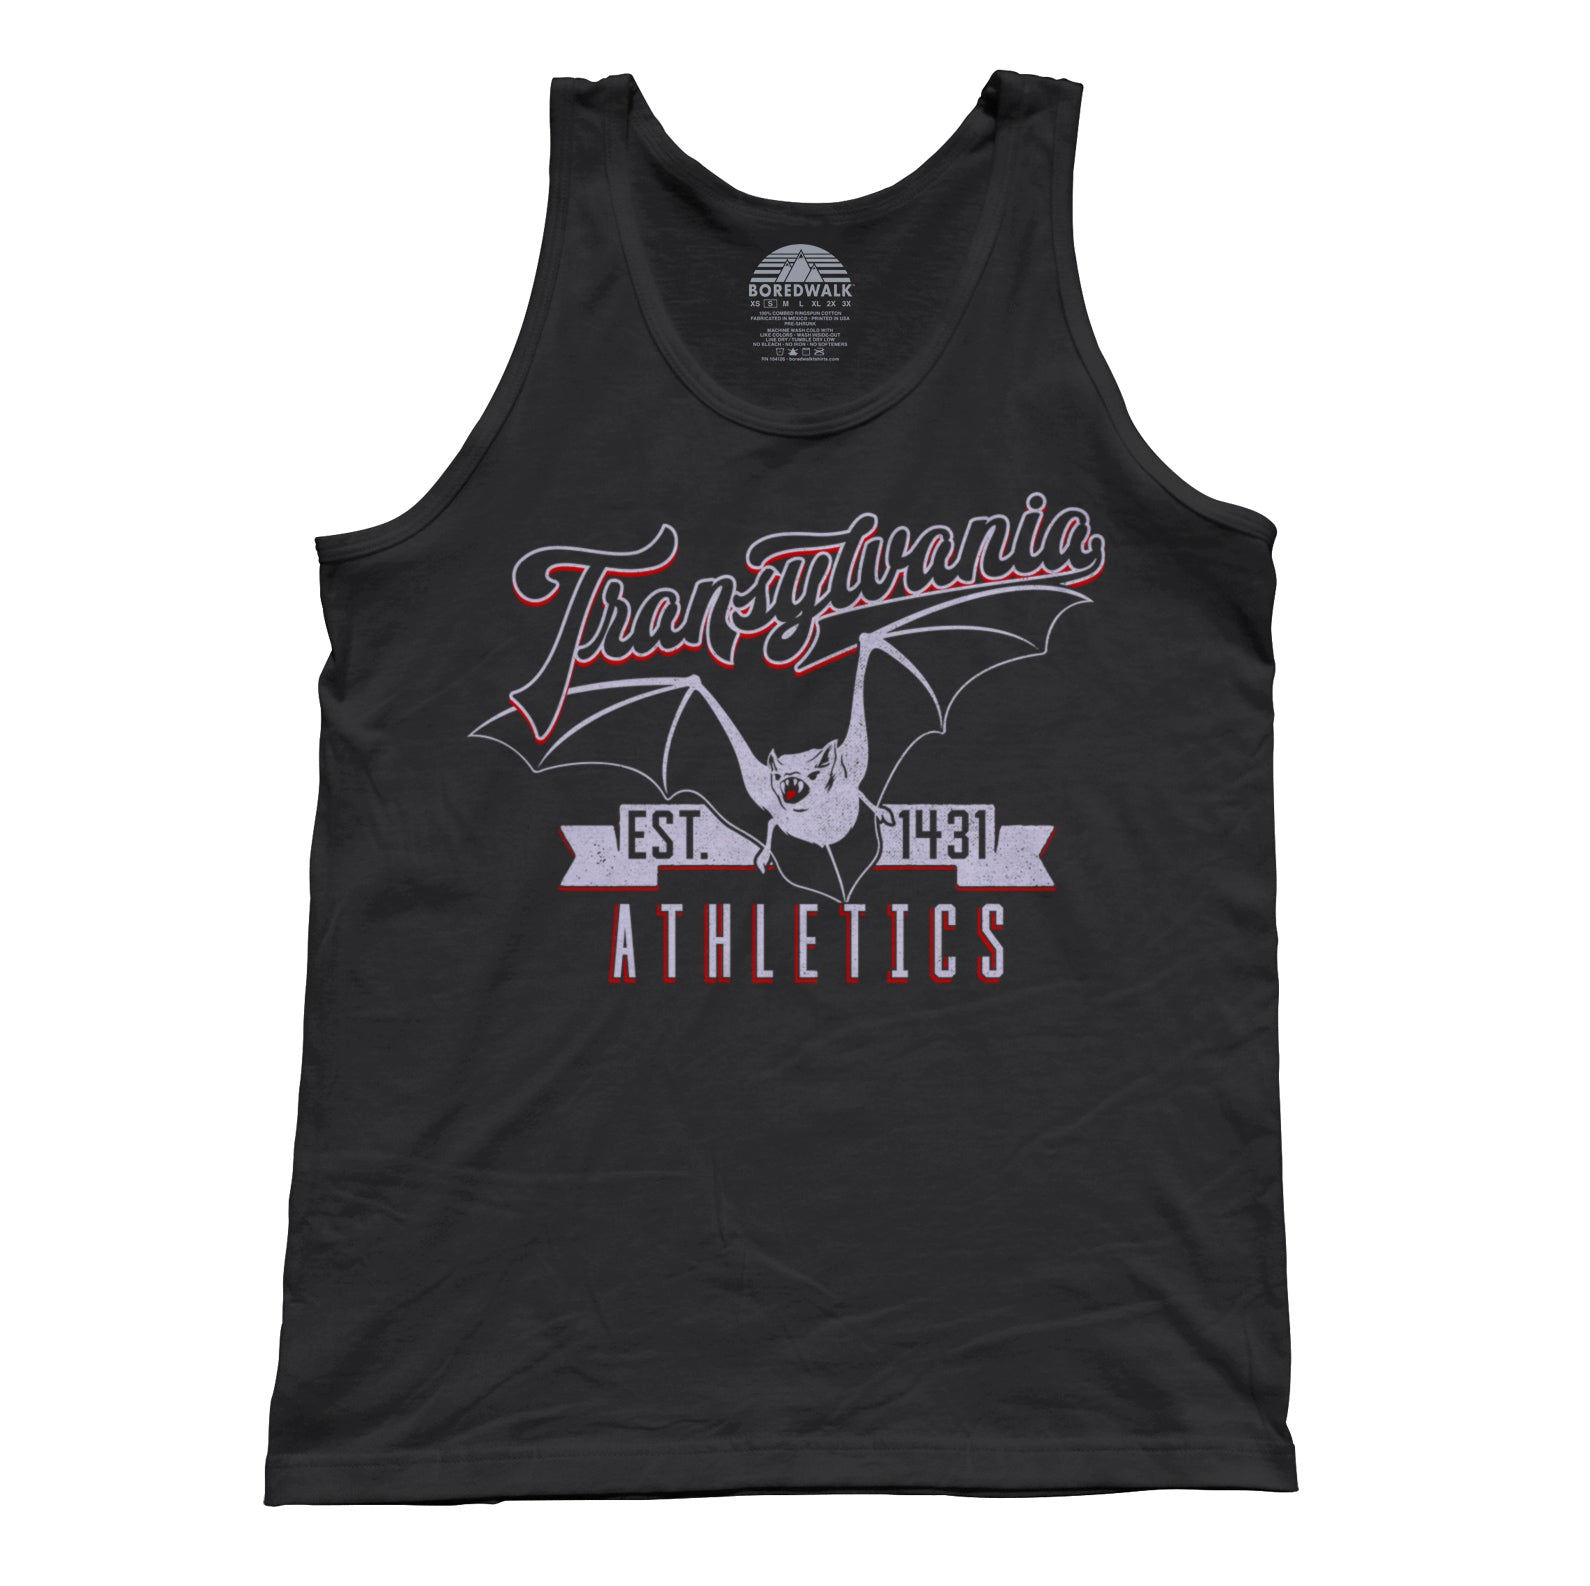 Unisex Transylvania Athletics Tank Top